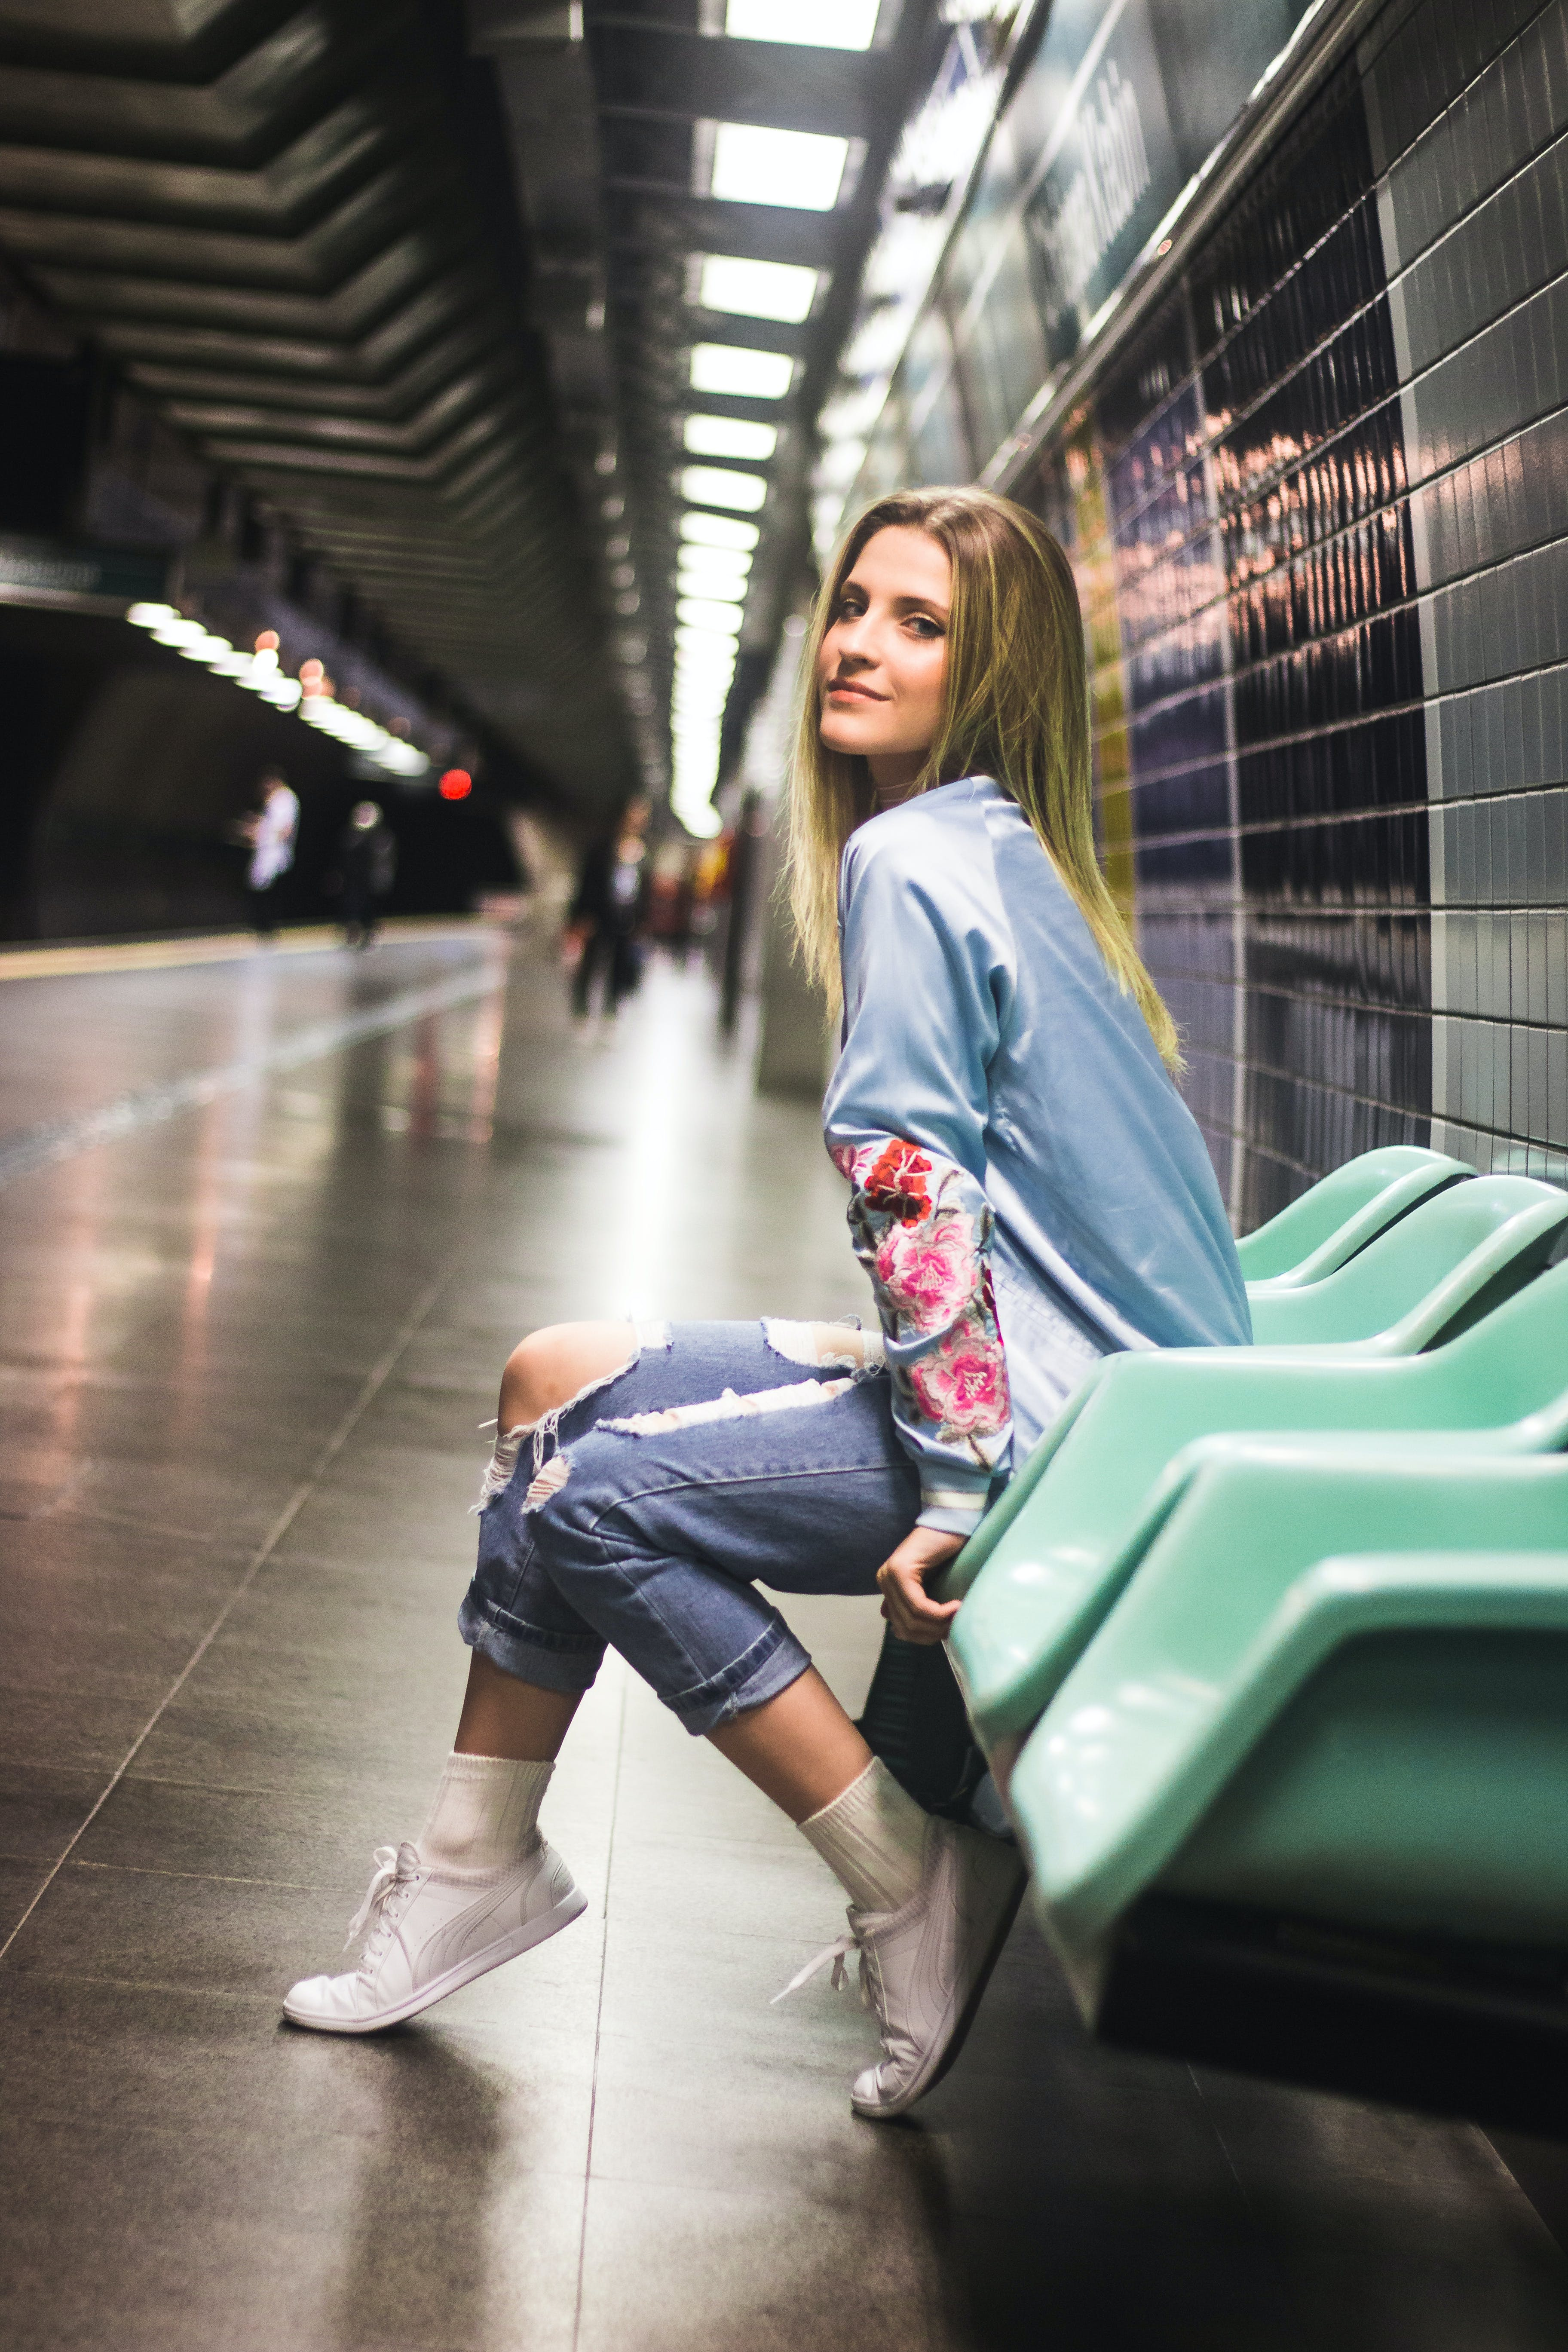 Woman Sitting on Teal Gang Chair on Train Station